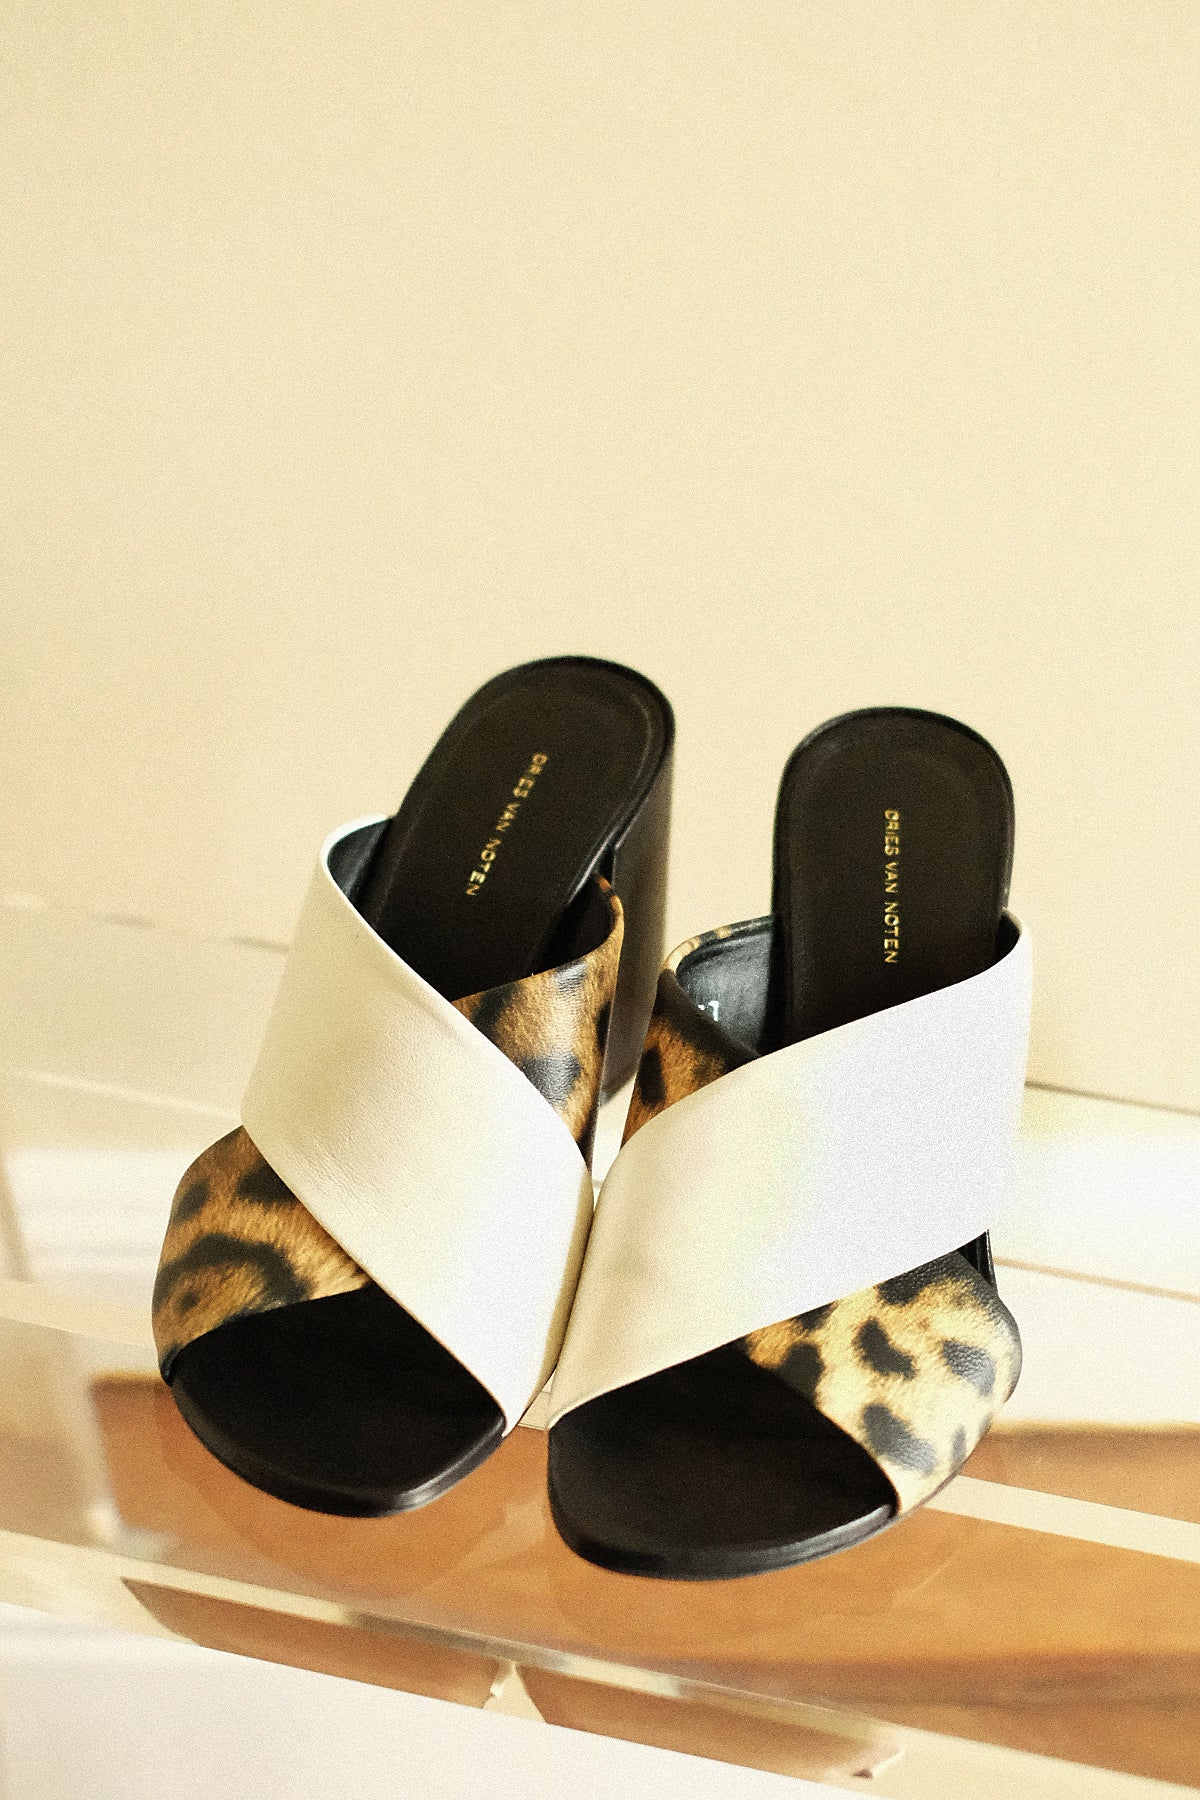 Dries van Noten — Heeled Sandals